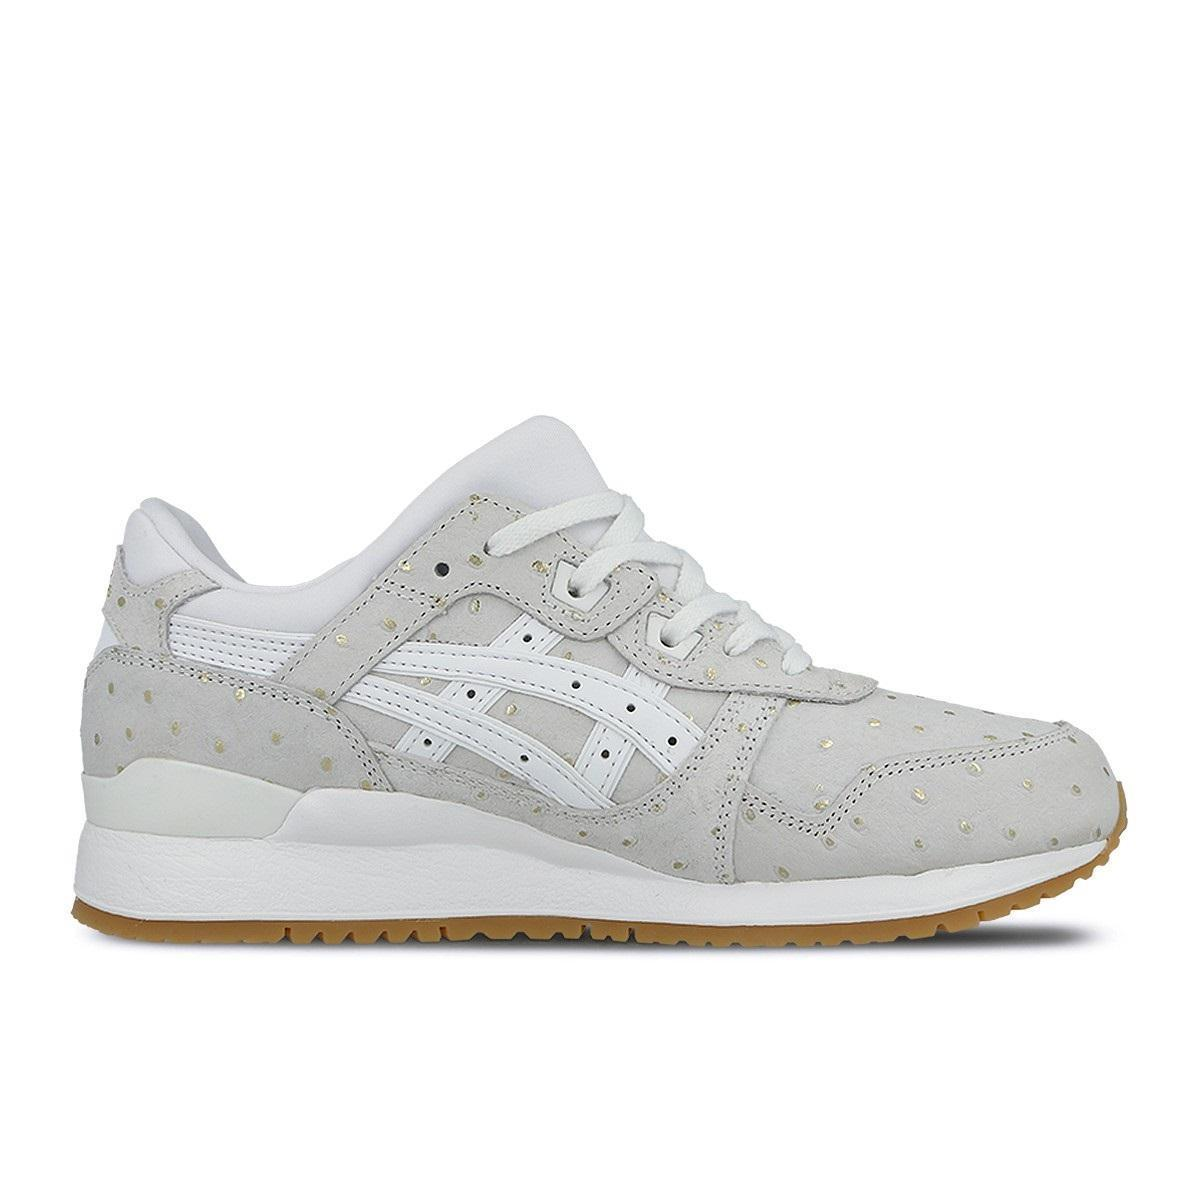 Womens ASICS GEL LYTE III White Trainers H7F8L 0101 Wild casual shoes